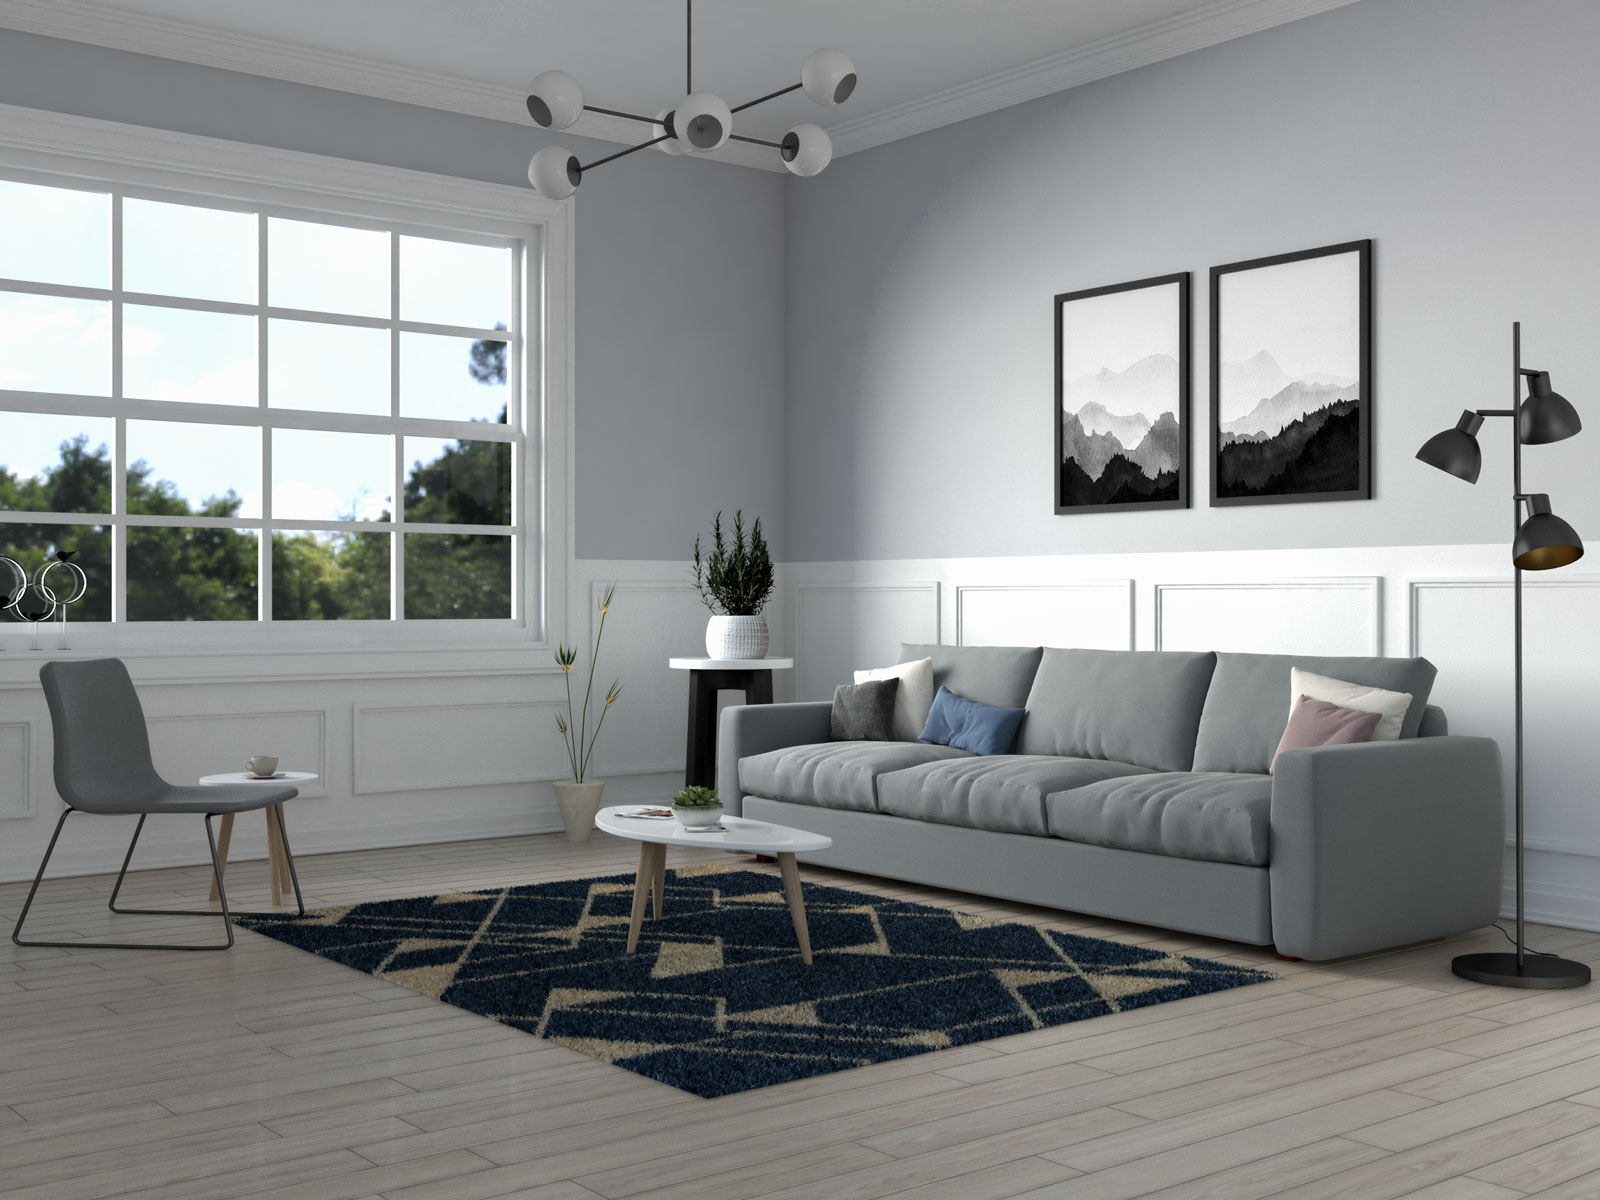 Beige and navy scandinavian style rug by well woven